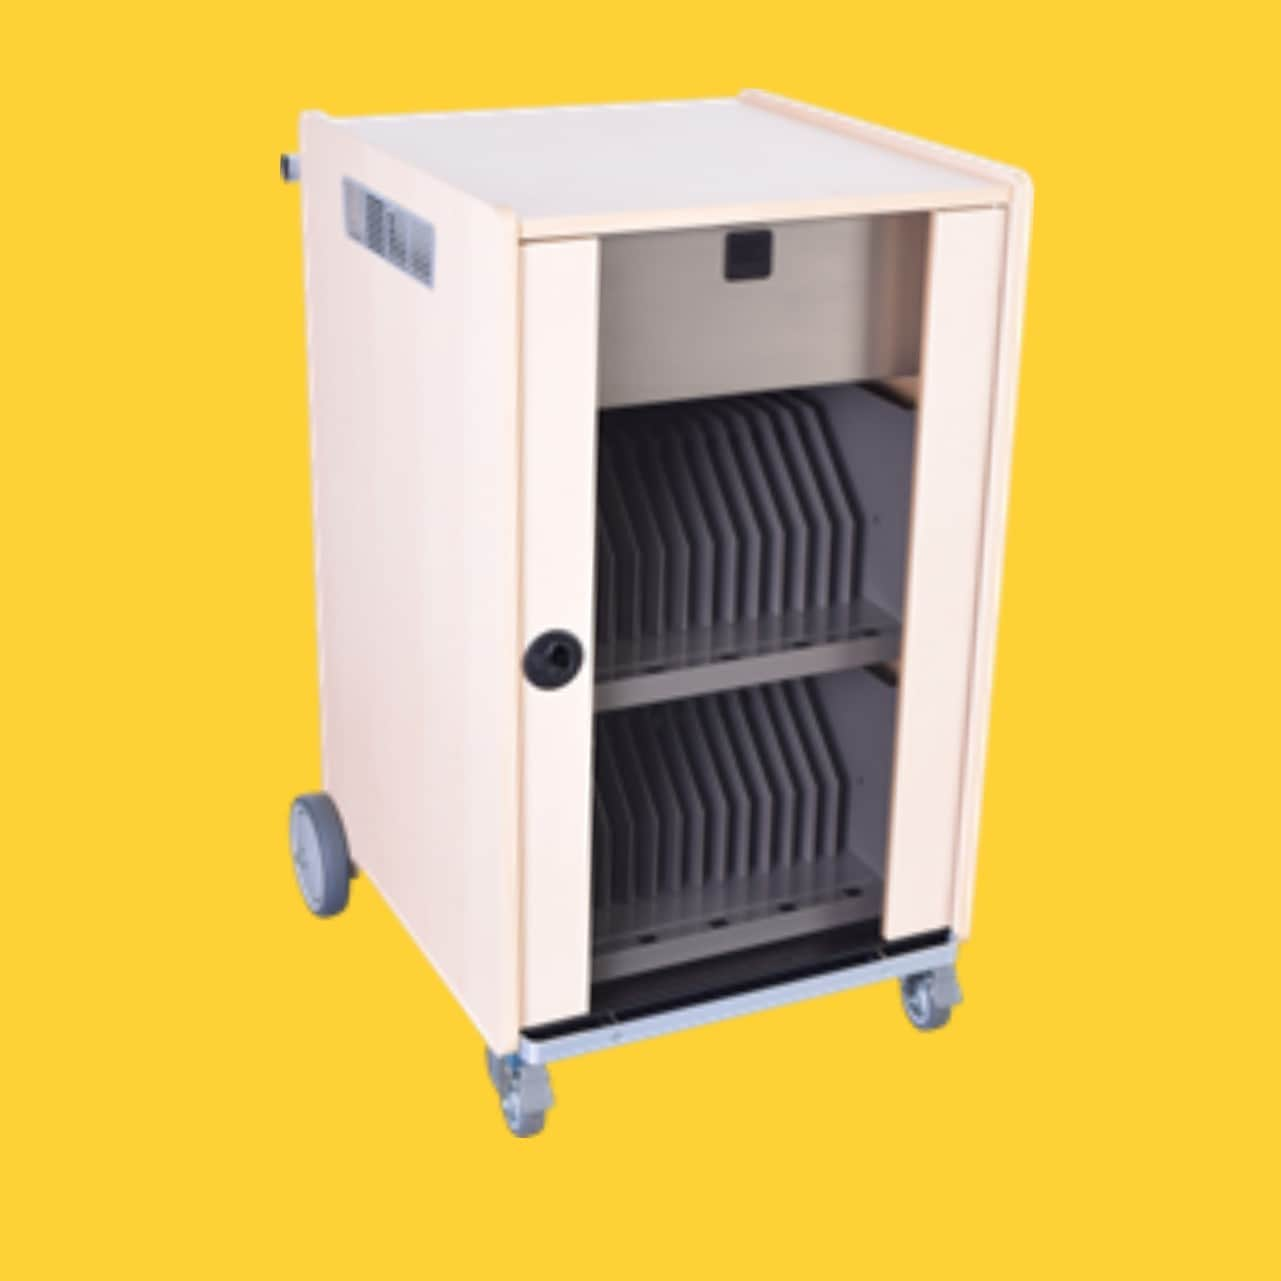 Tablet Trolley for security and daily charging of tablets in schools